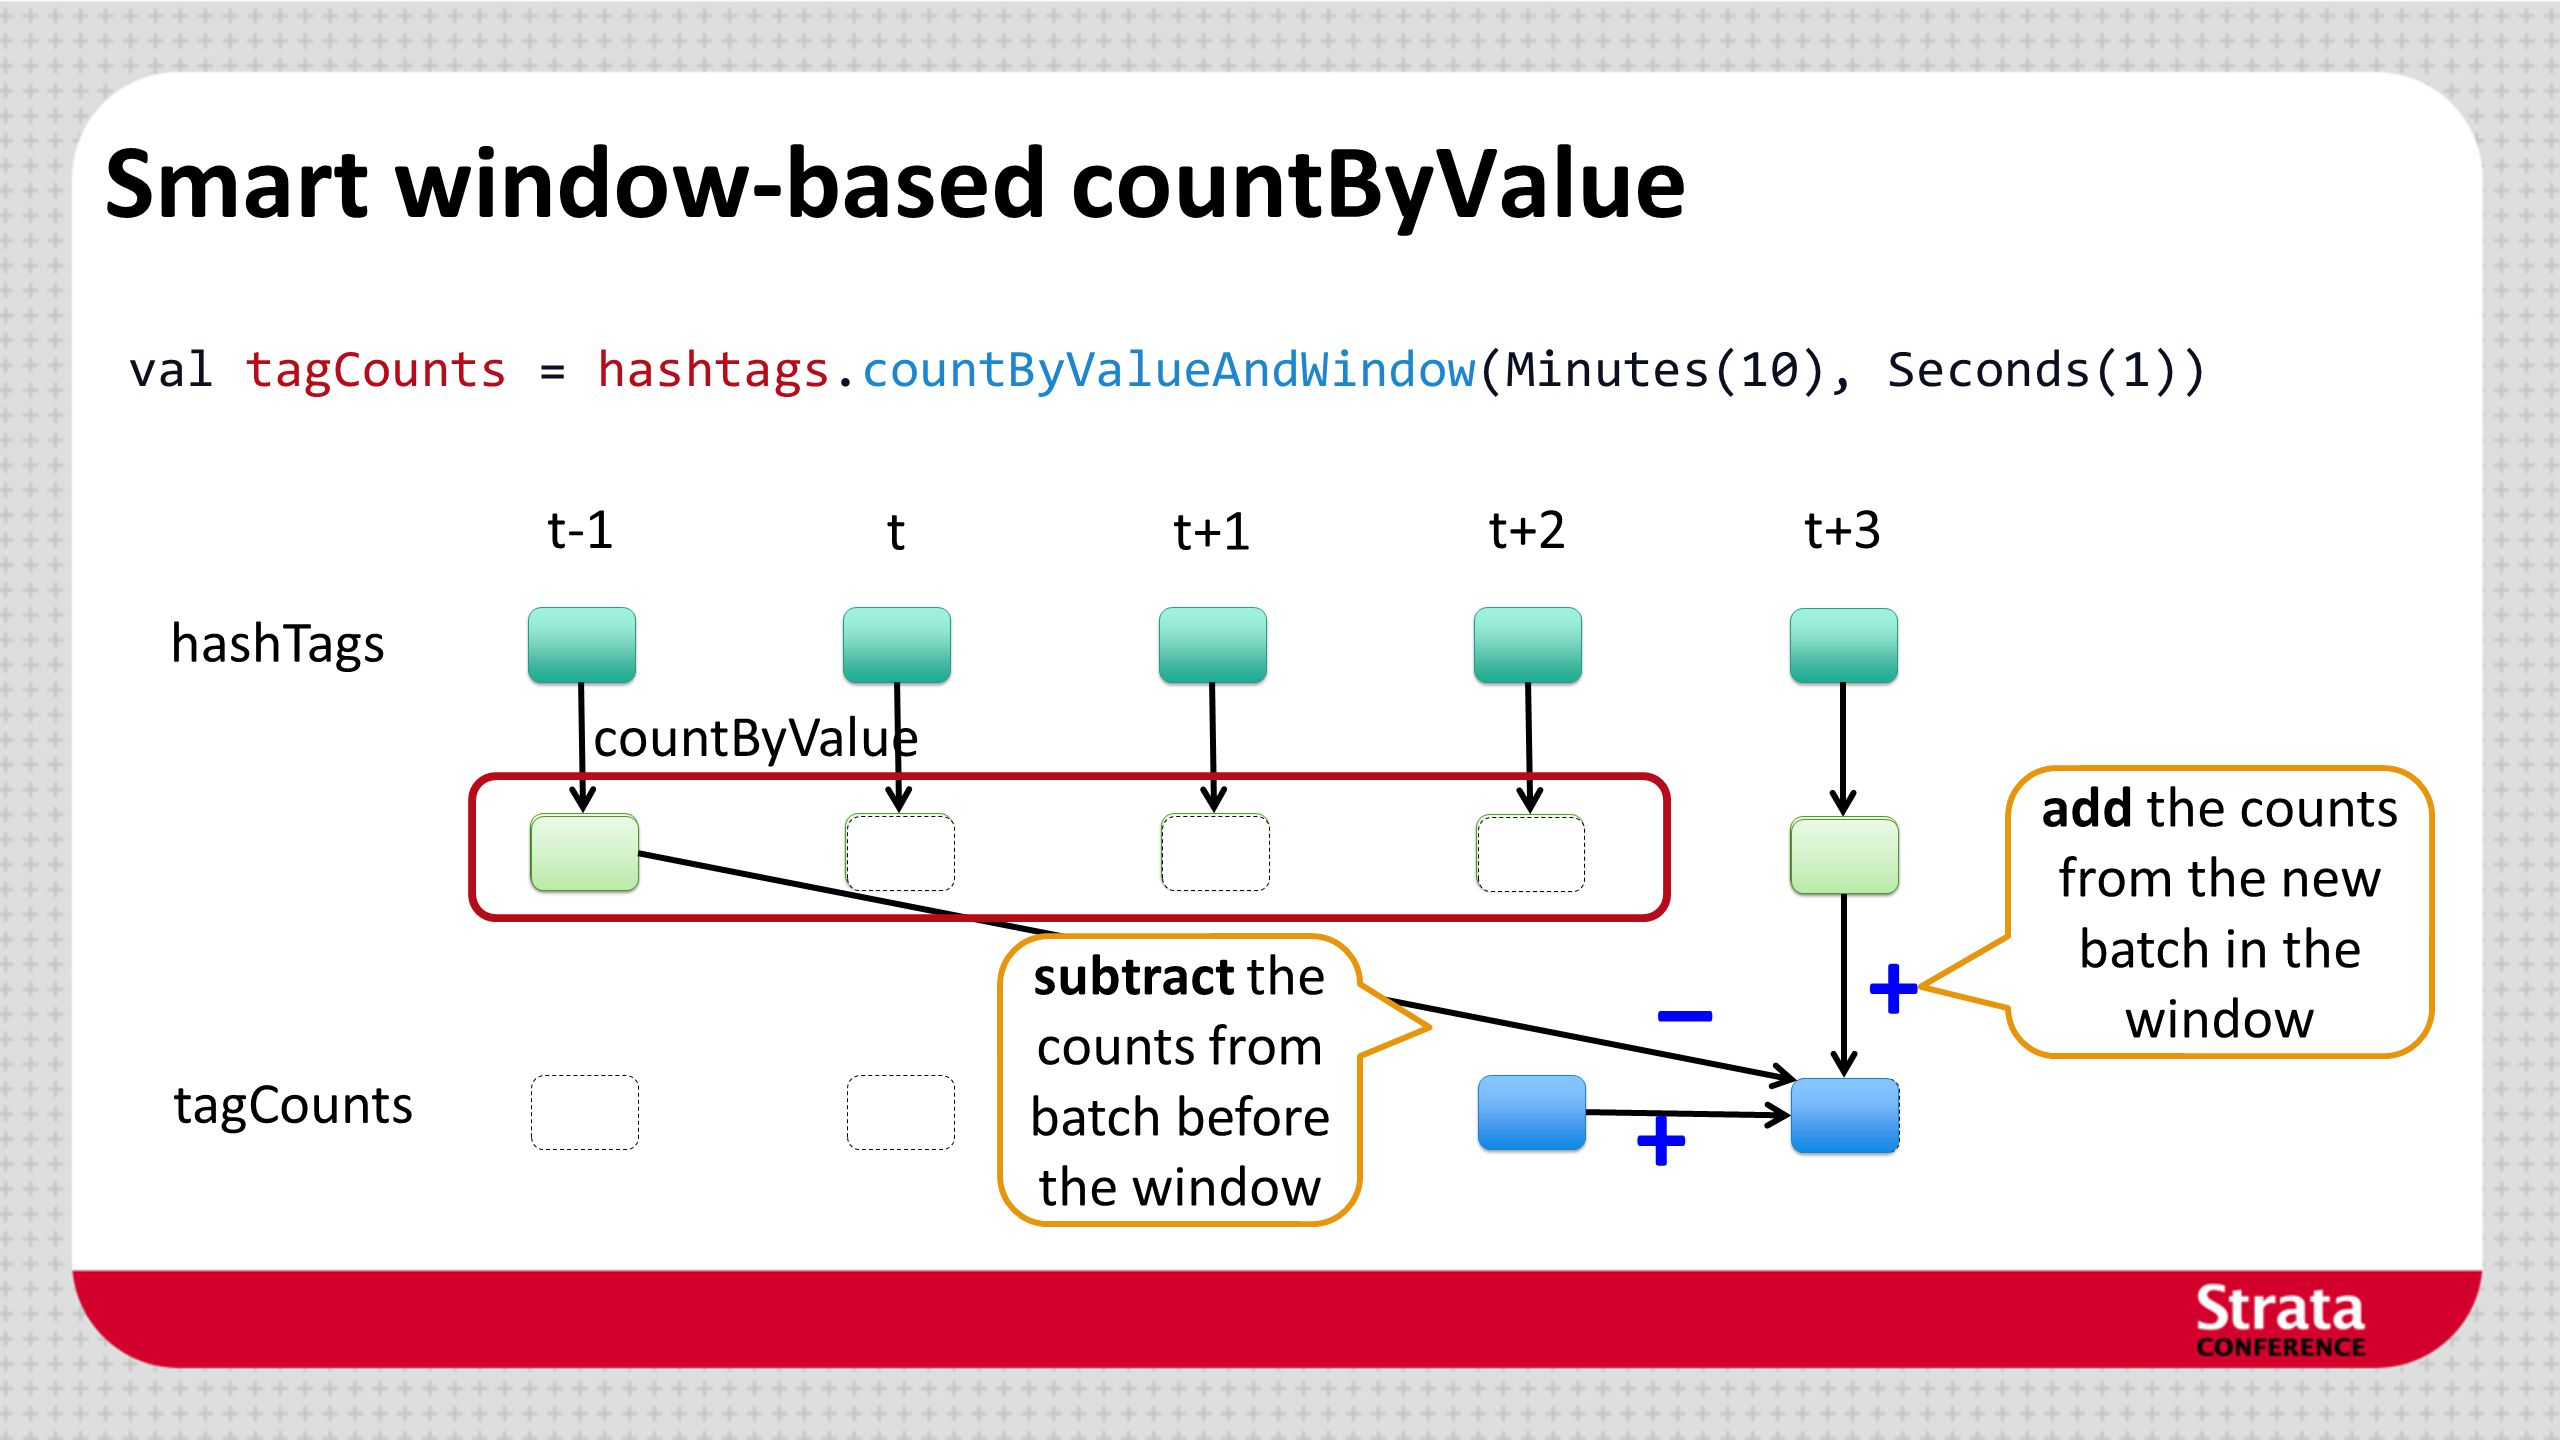 Smart window-based countByValue